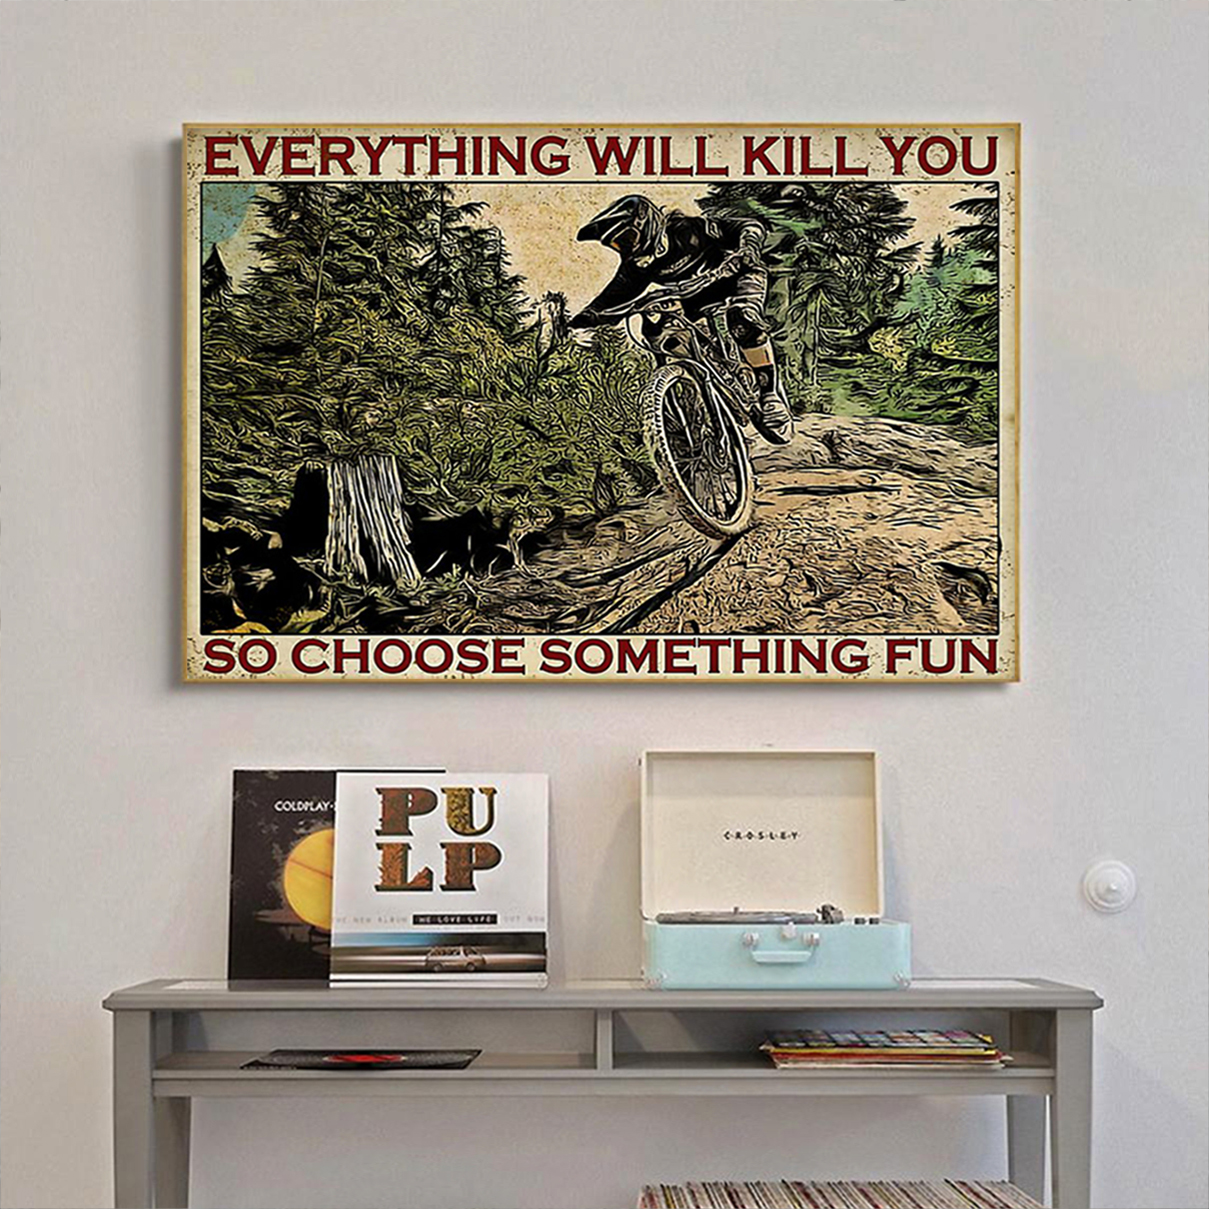 Enduro mountain bike choose something fun poster A3